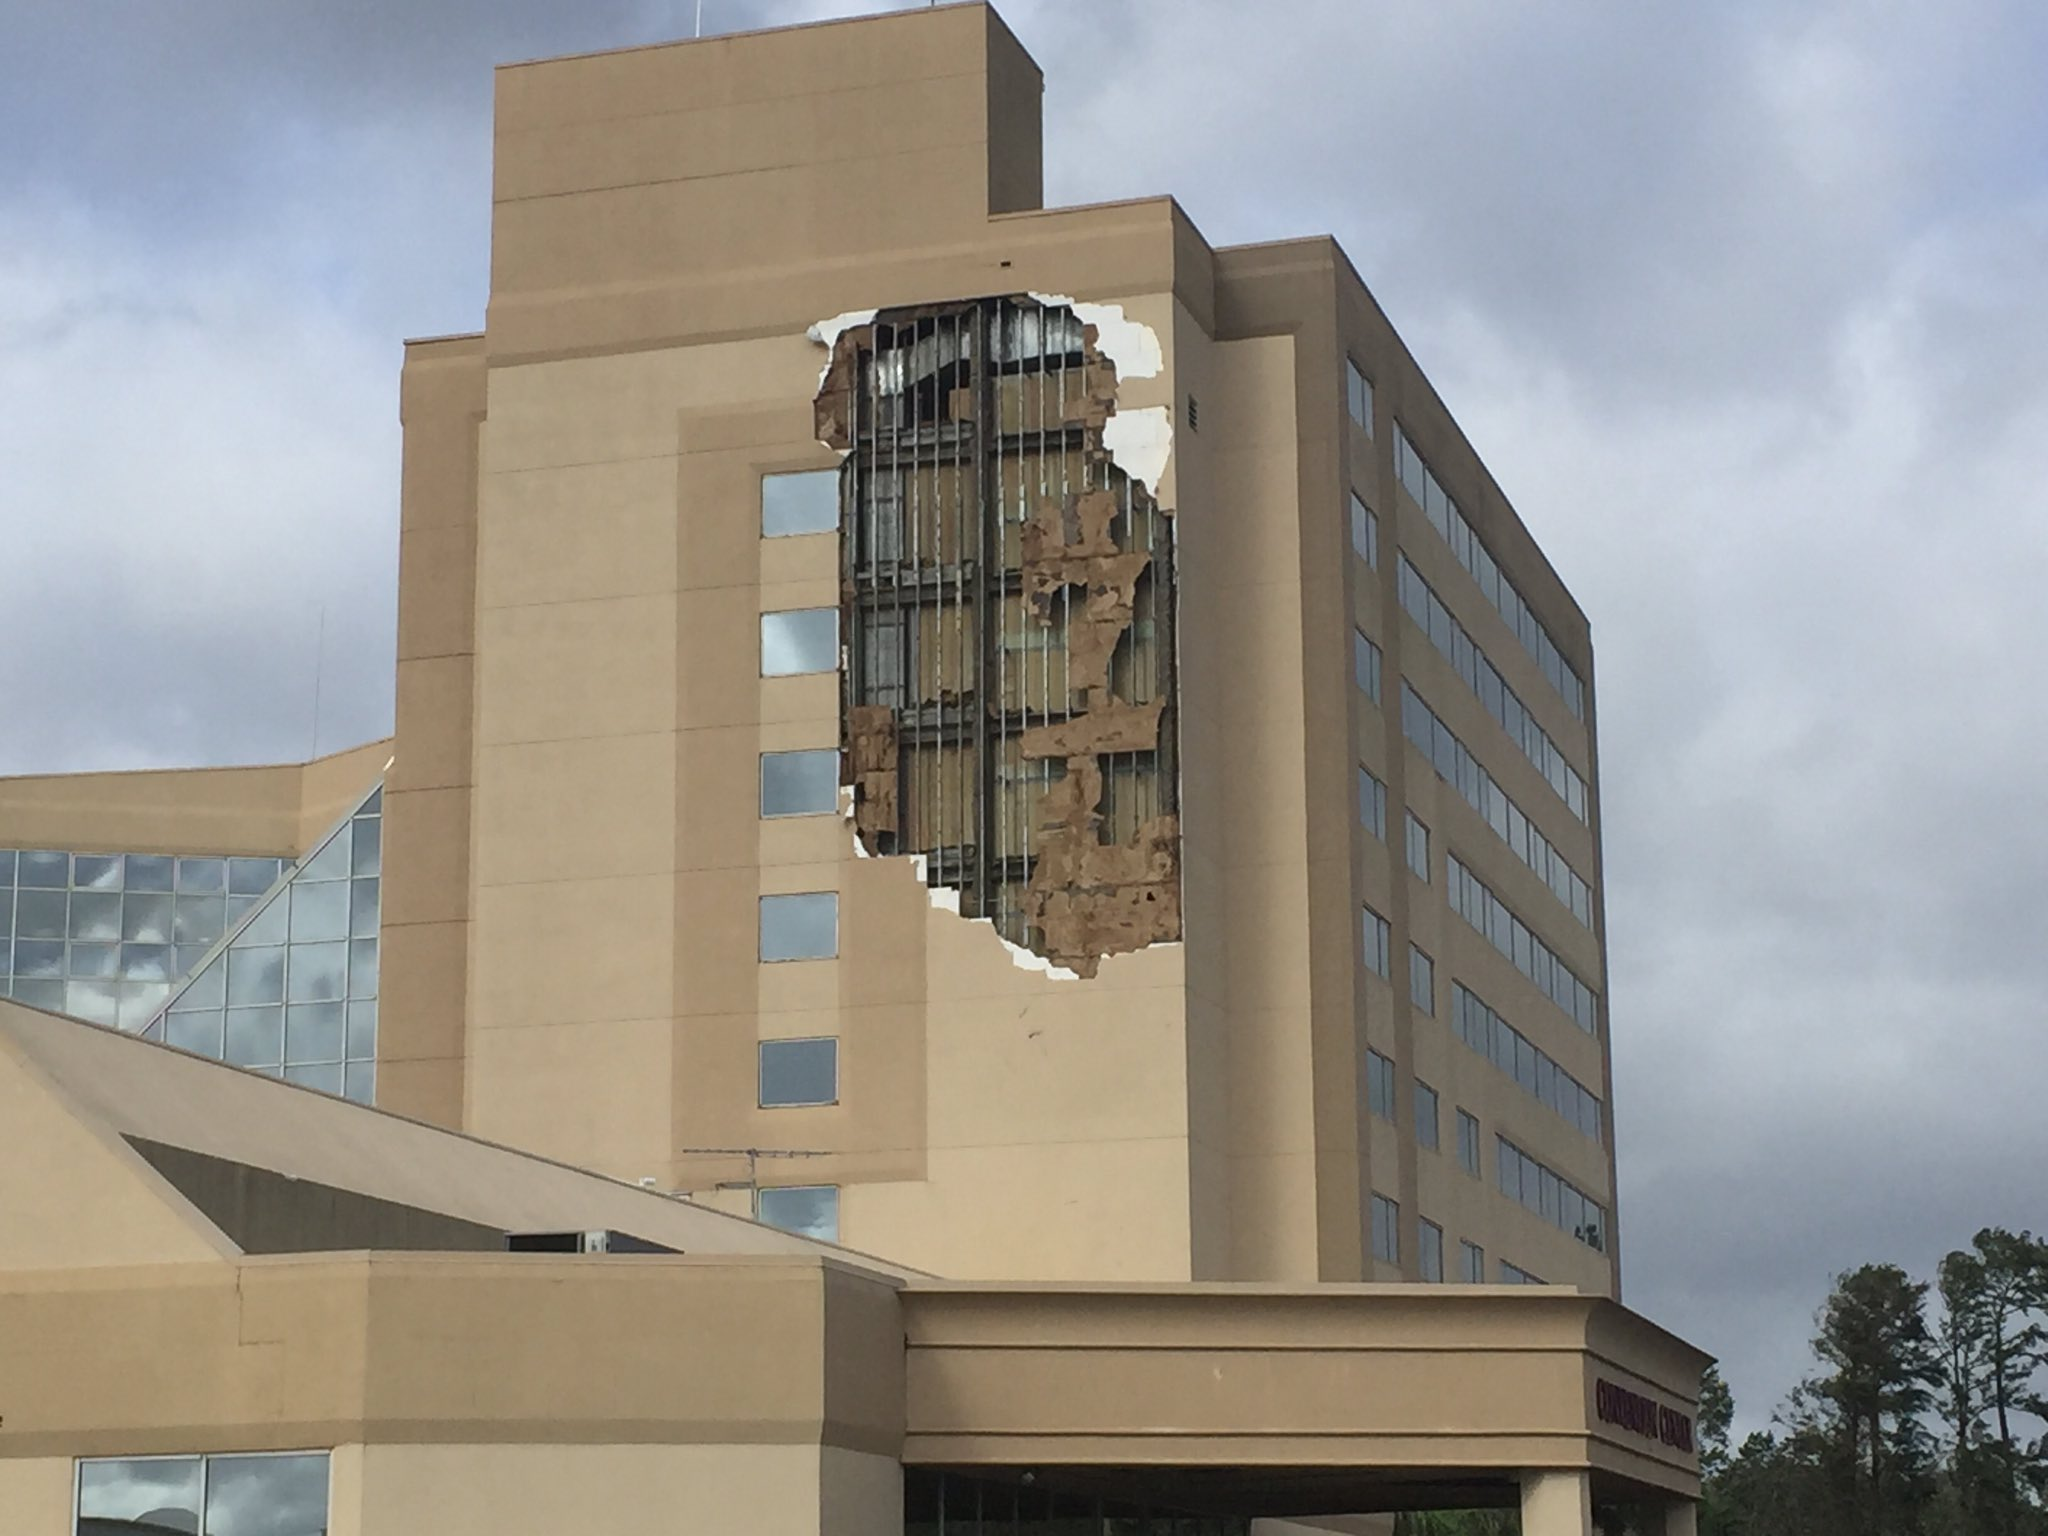 "<div class=""meta image-caption""><div class=""origin-logo origin-image none""><span>none</span></div><span class=""caption-text"">A DoubleTree hotel by the Orlando Airport had part of its side ripped off by Hurricane Irma. (Roy Ramos/WFTV)</span></div>"